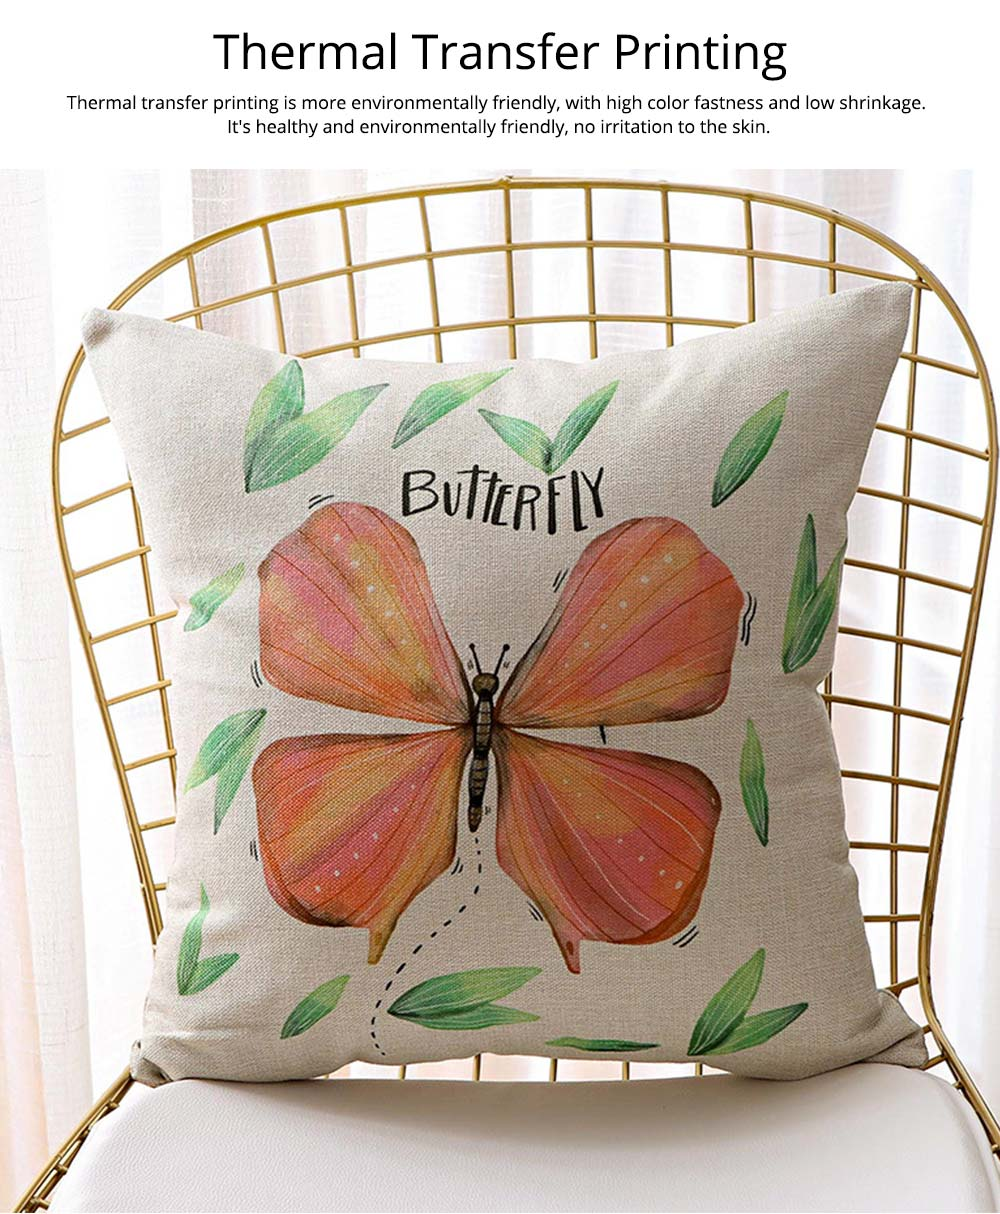 Floral Print Pillowcase with Core Artistic Pastoralism, Light Color Simple Style Linen Cushion Cover 6